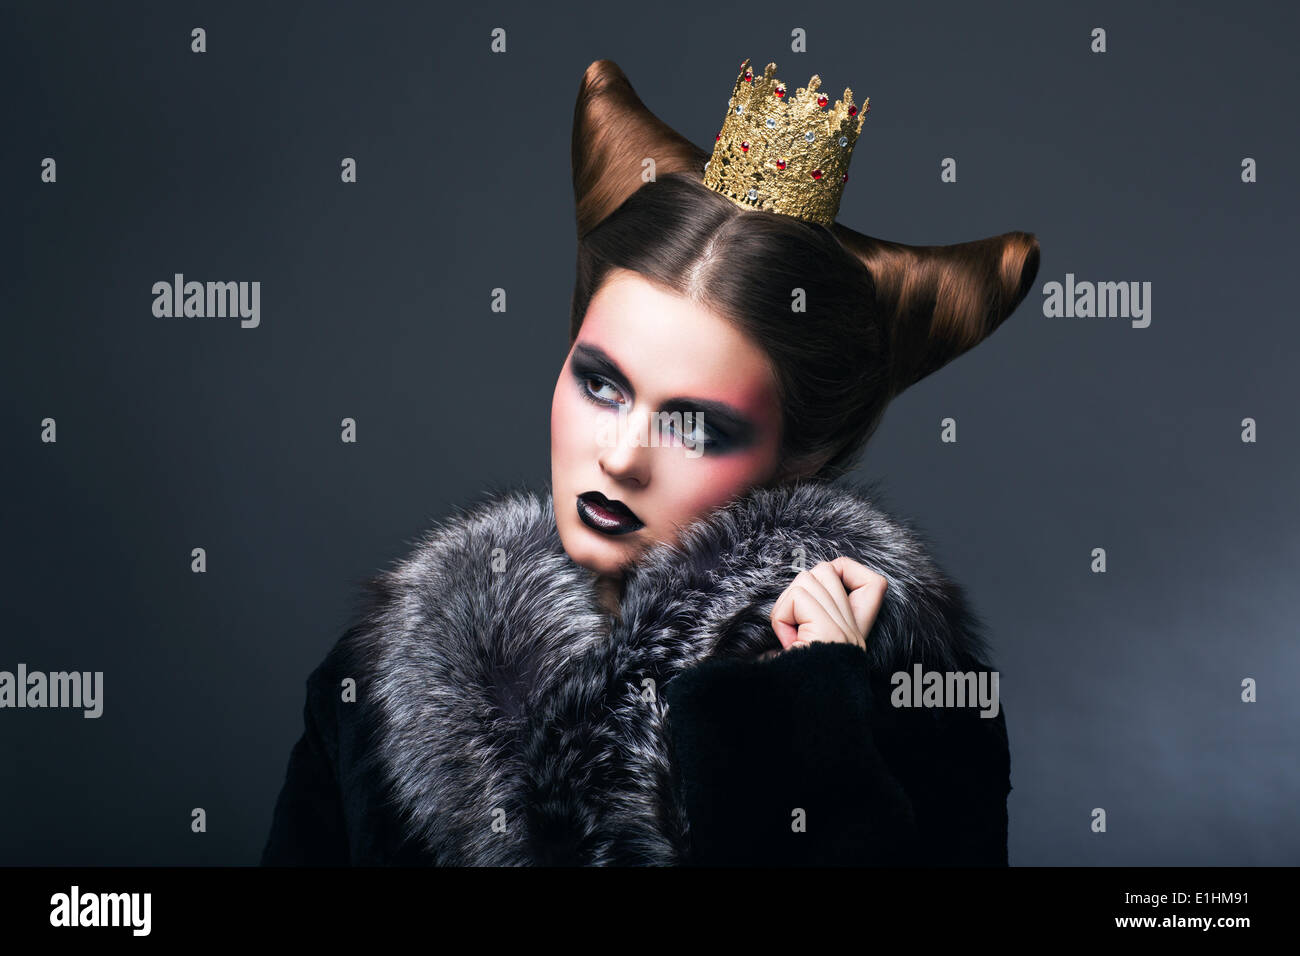 Stylized Woman in Fur Coat and Gold Grown. Nostalgia - Stock Image